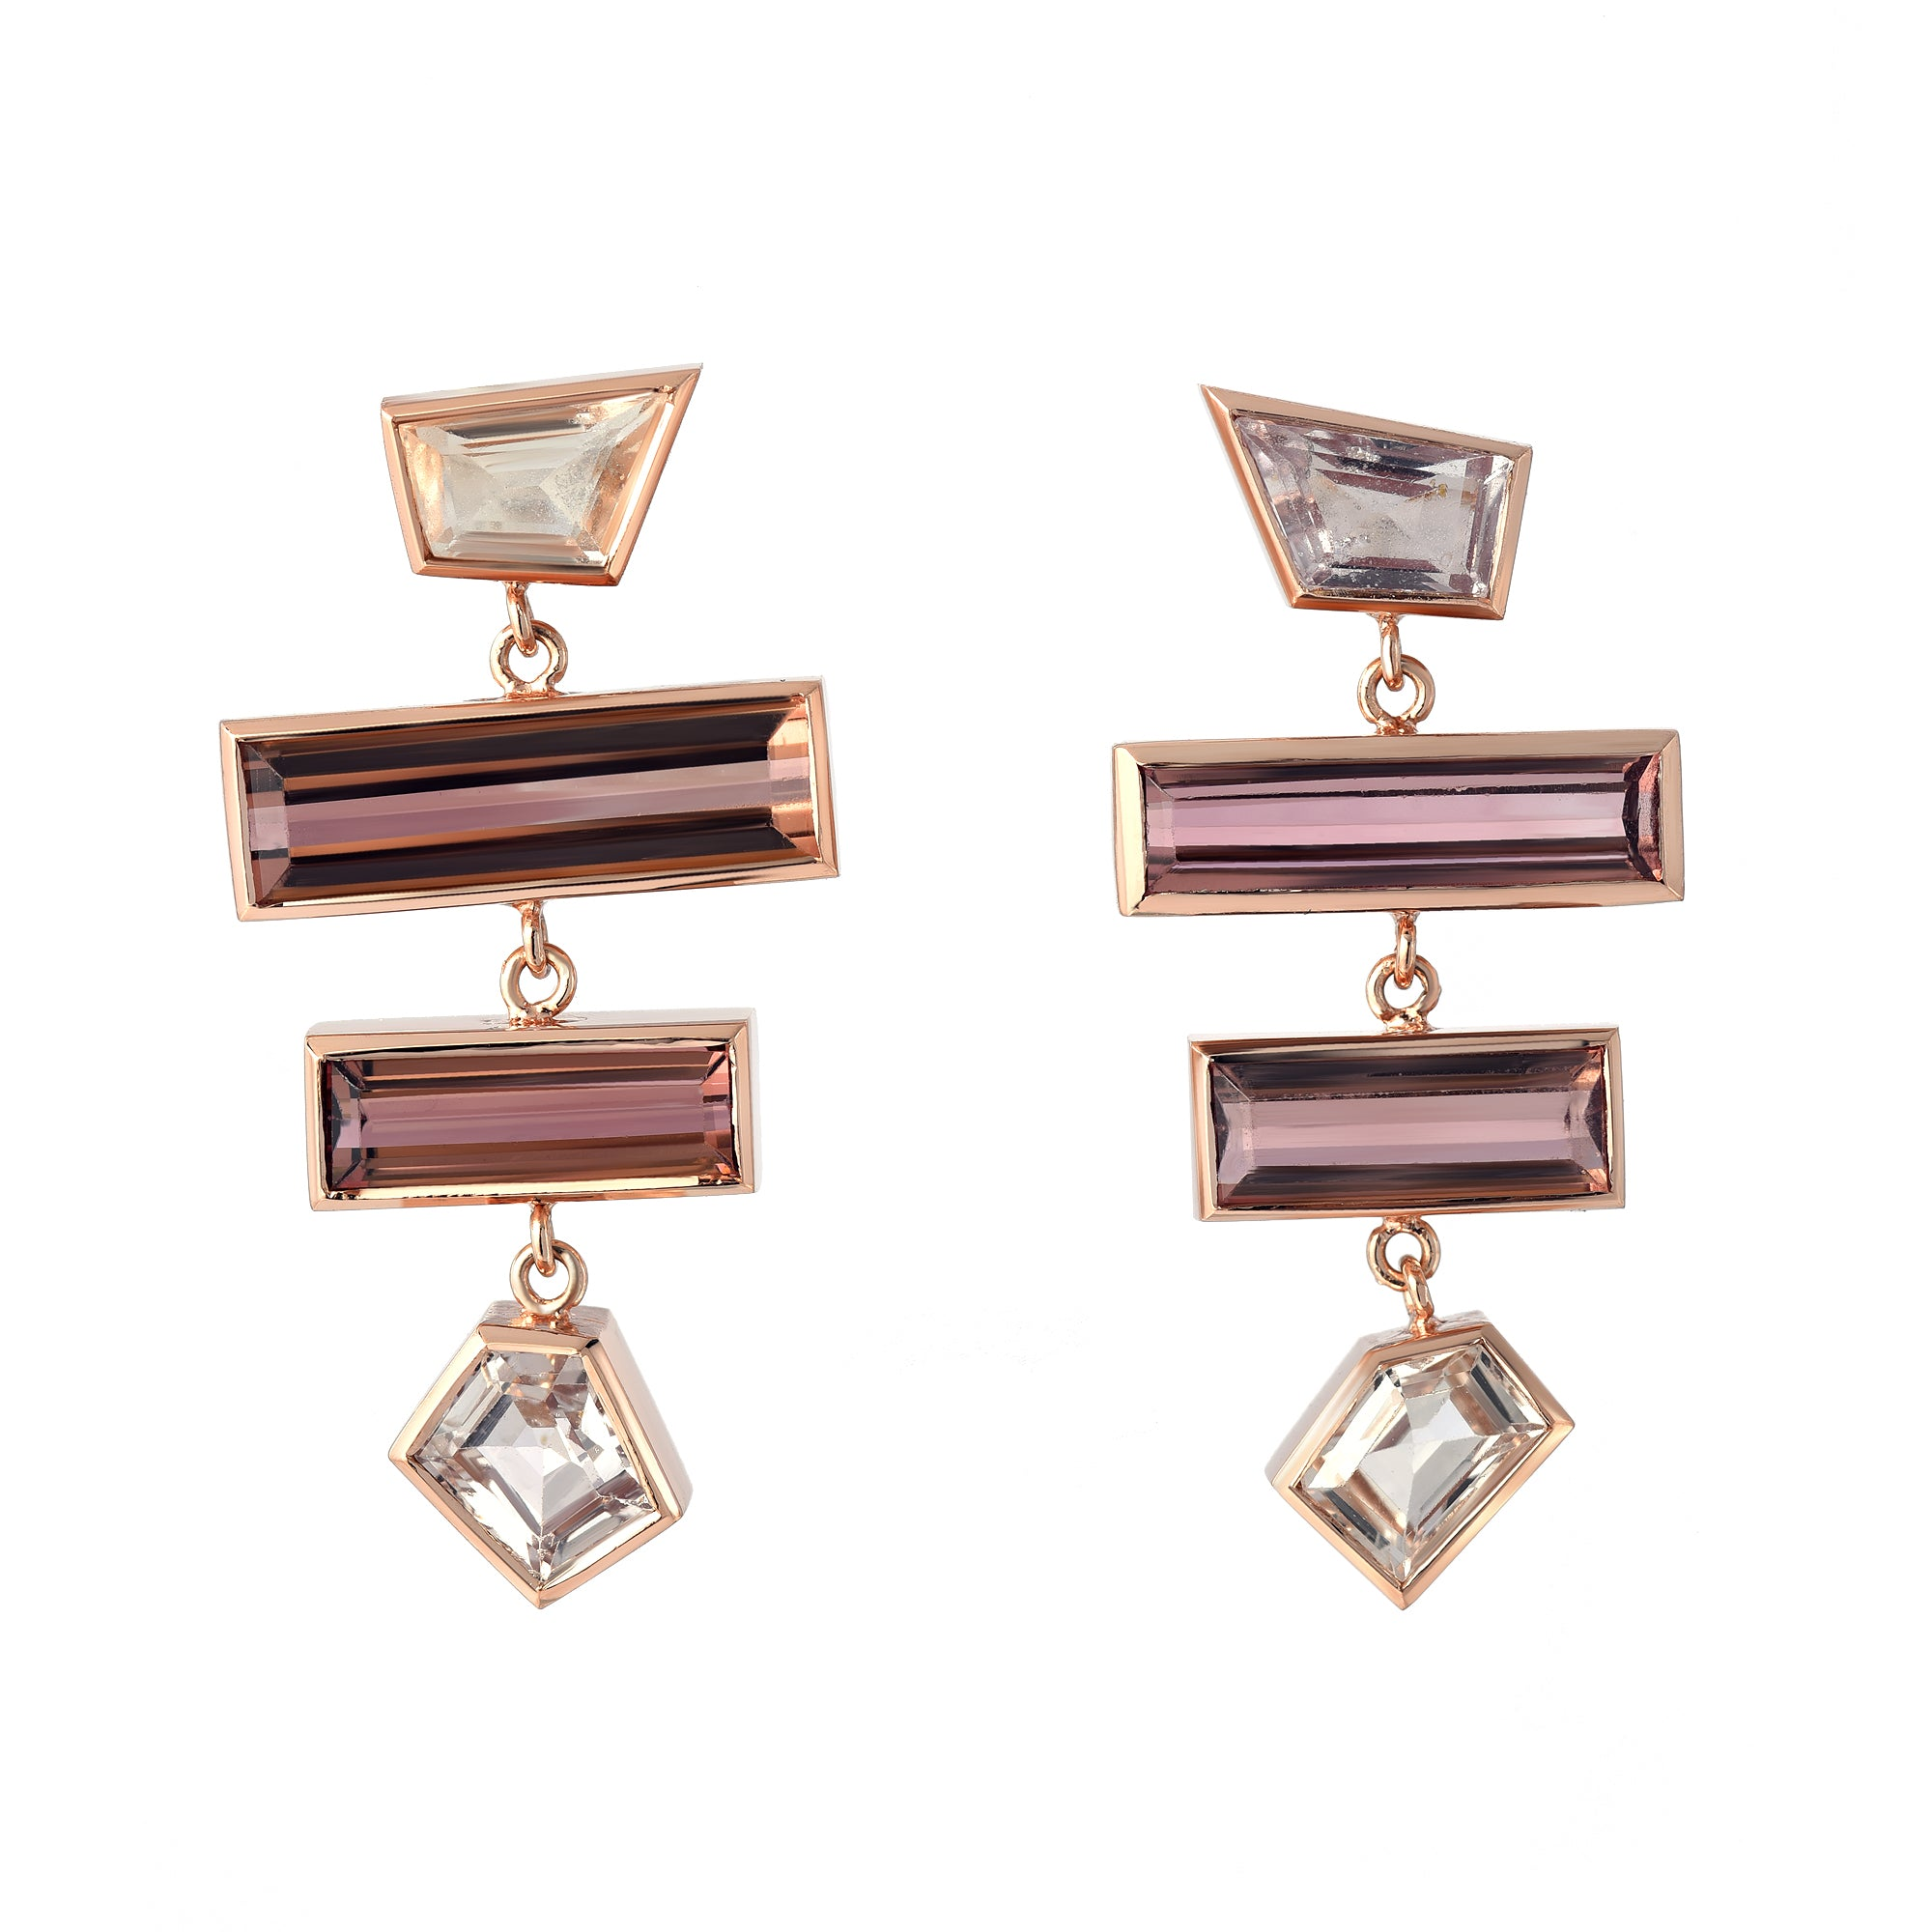 Grande Interlock Sapphire and Tourmaline Earrings